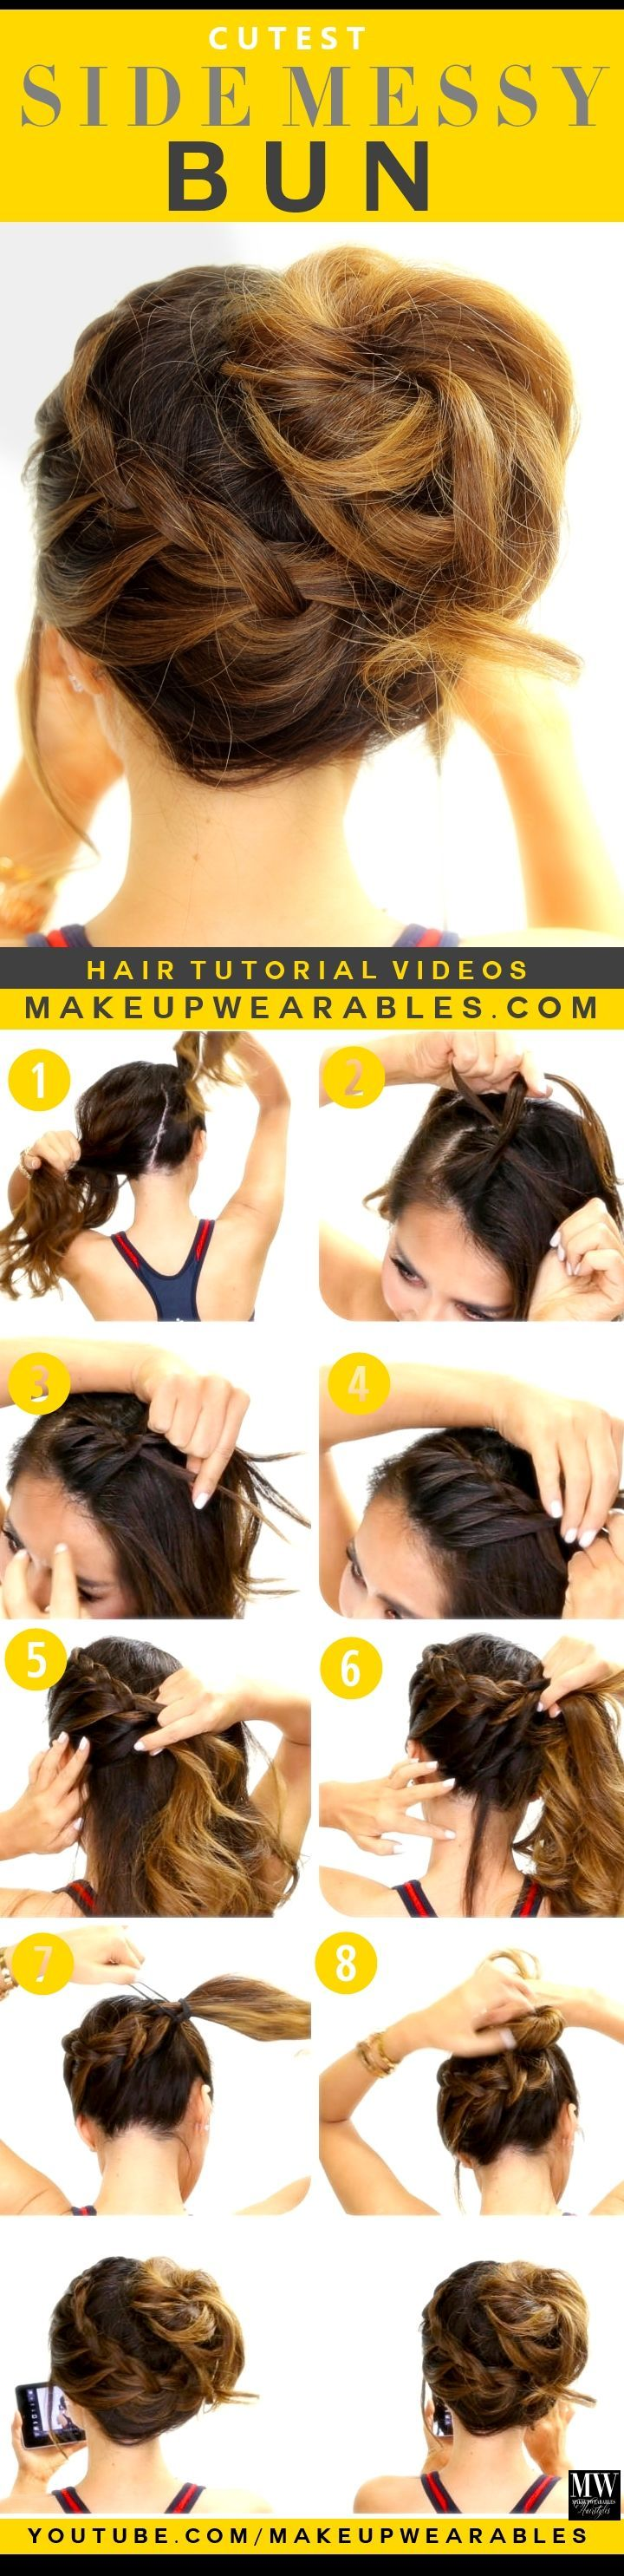 21 best Hairstyles images on Pinterest